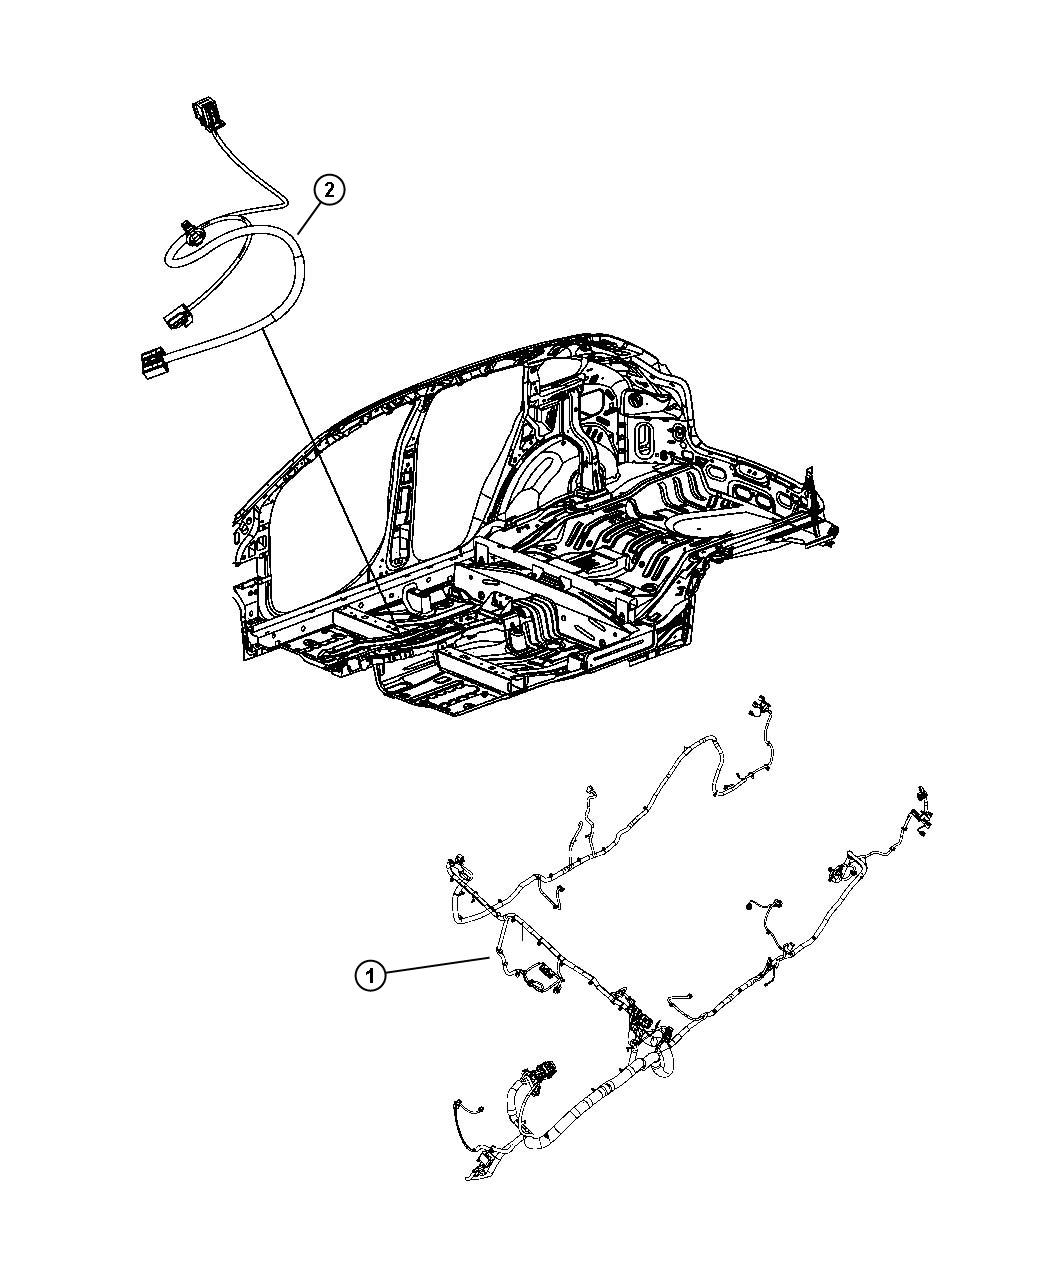 Dodge Caliber Wiring Unified Body